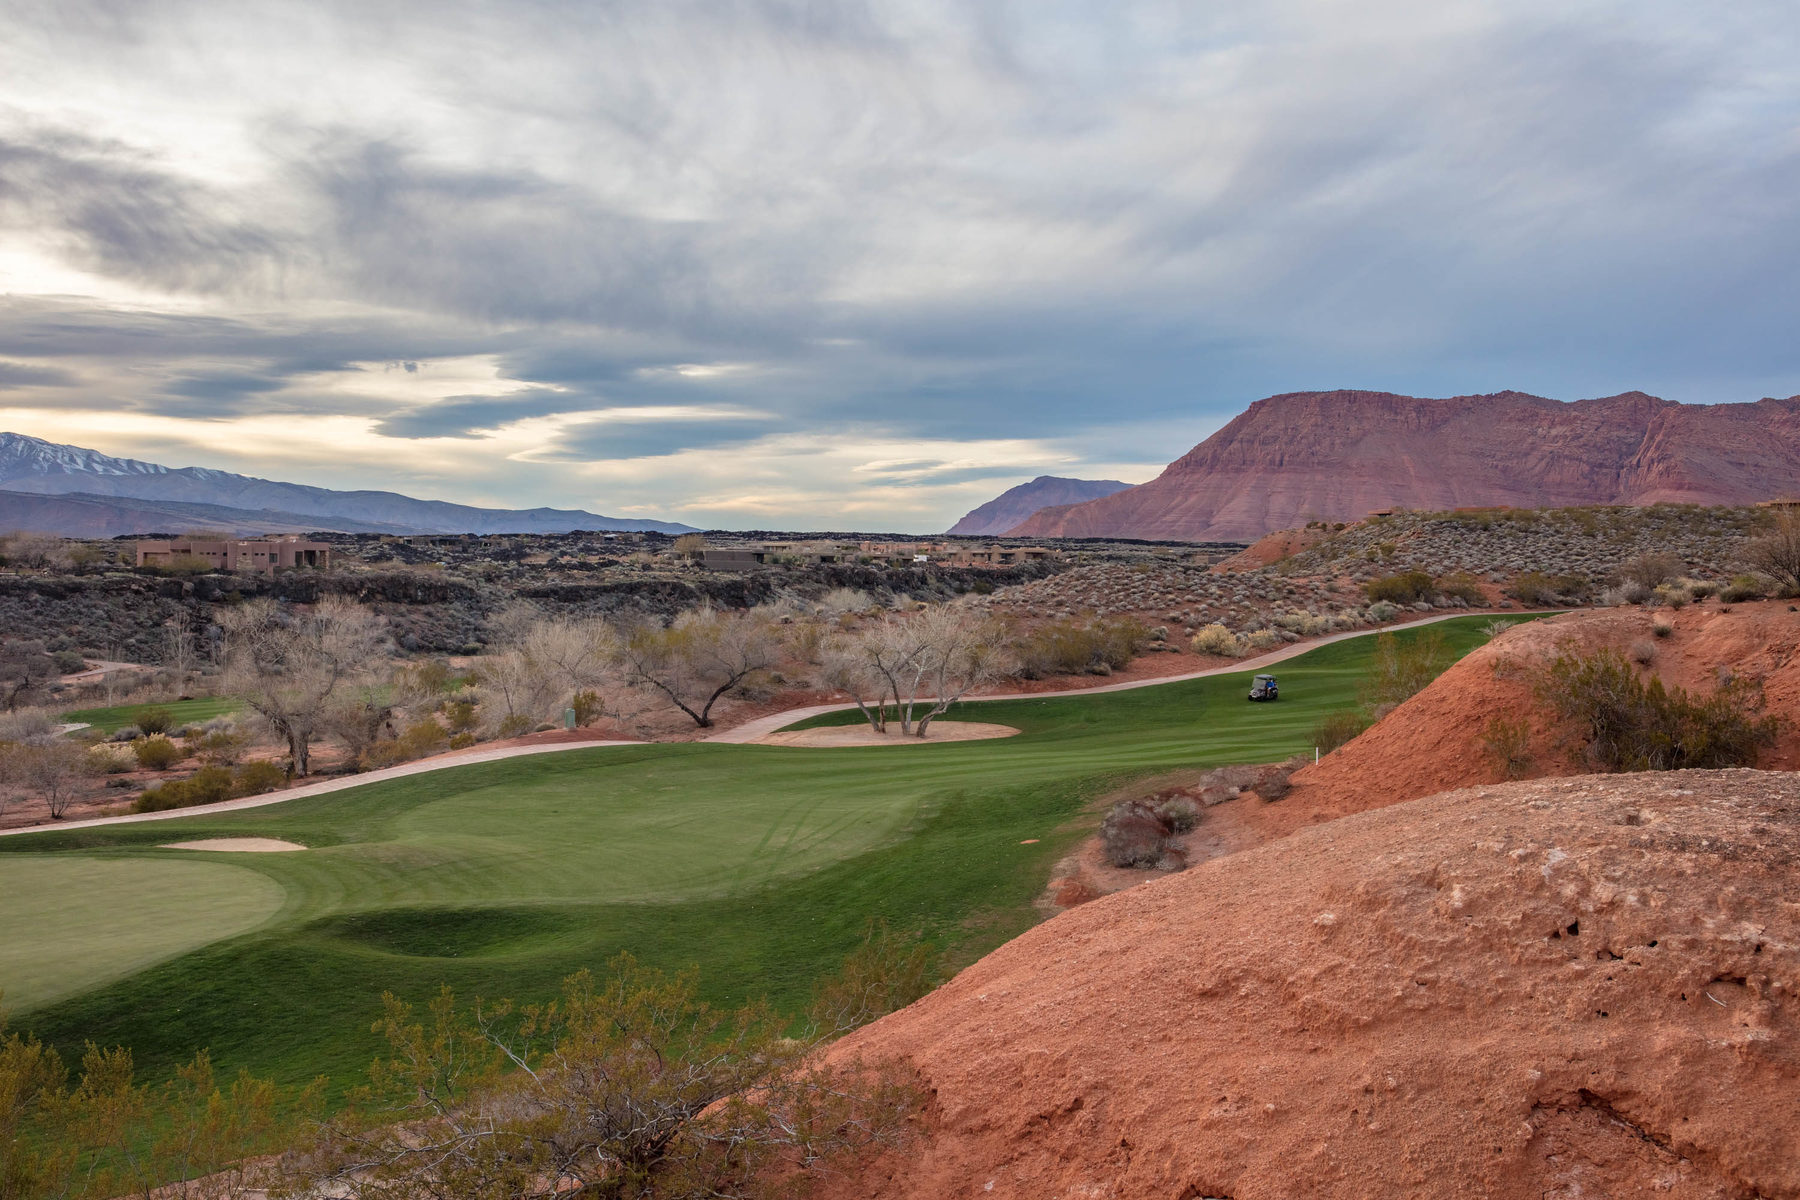 Land for Sale at Gorgeous View Lot Lot 53 N Moenavi Cir St. George, Utah, 84770 United States